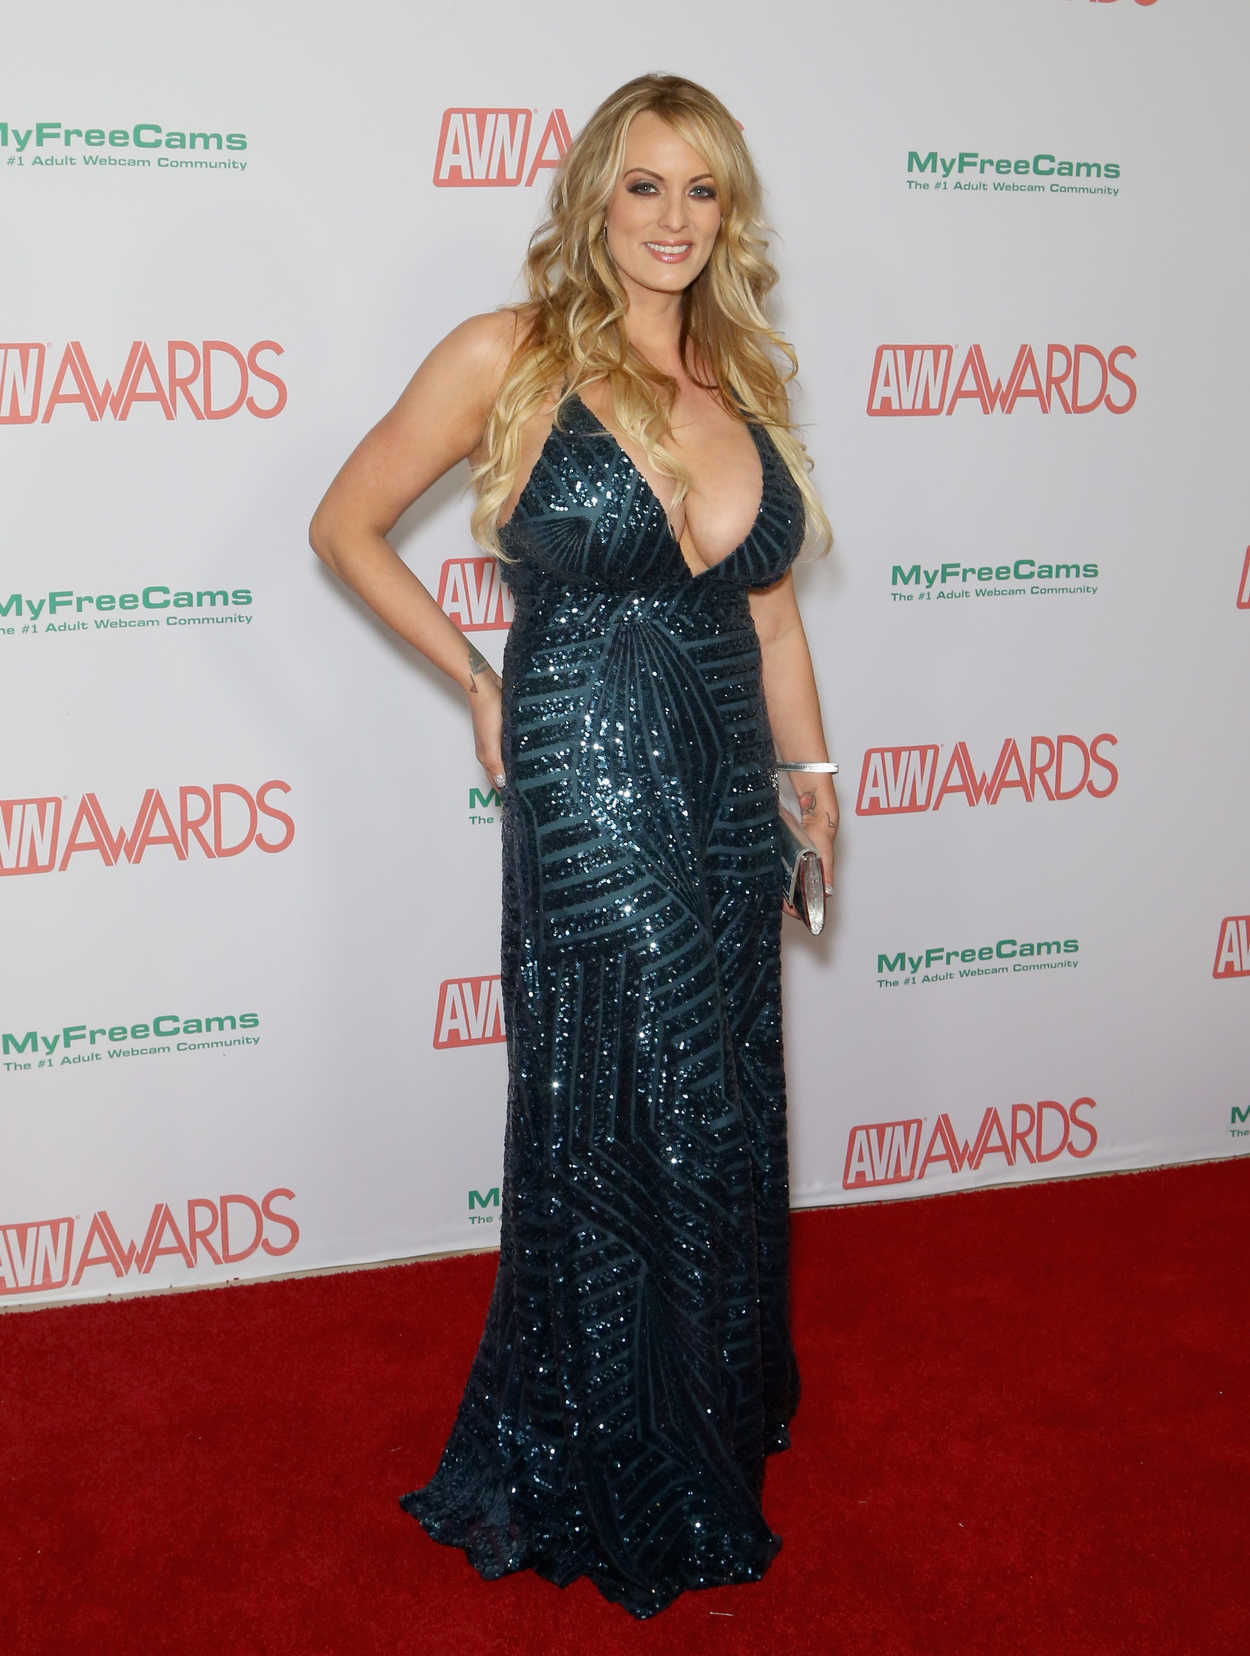 KENDRA JADE at AVN Awards Nominations Announcement in